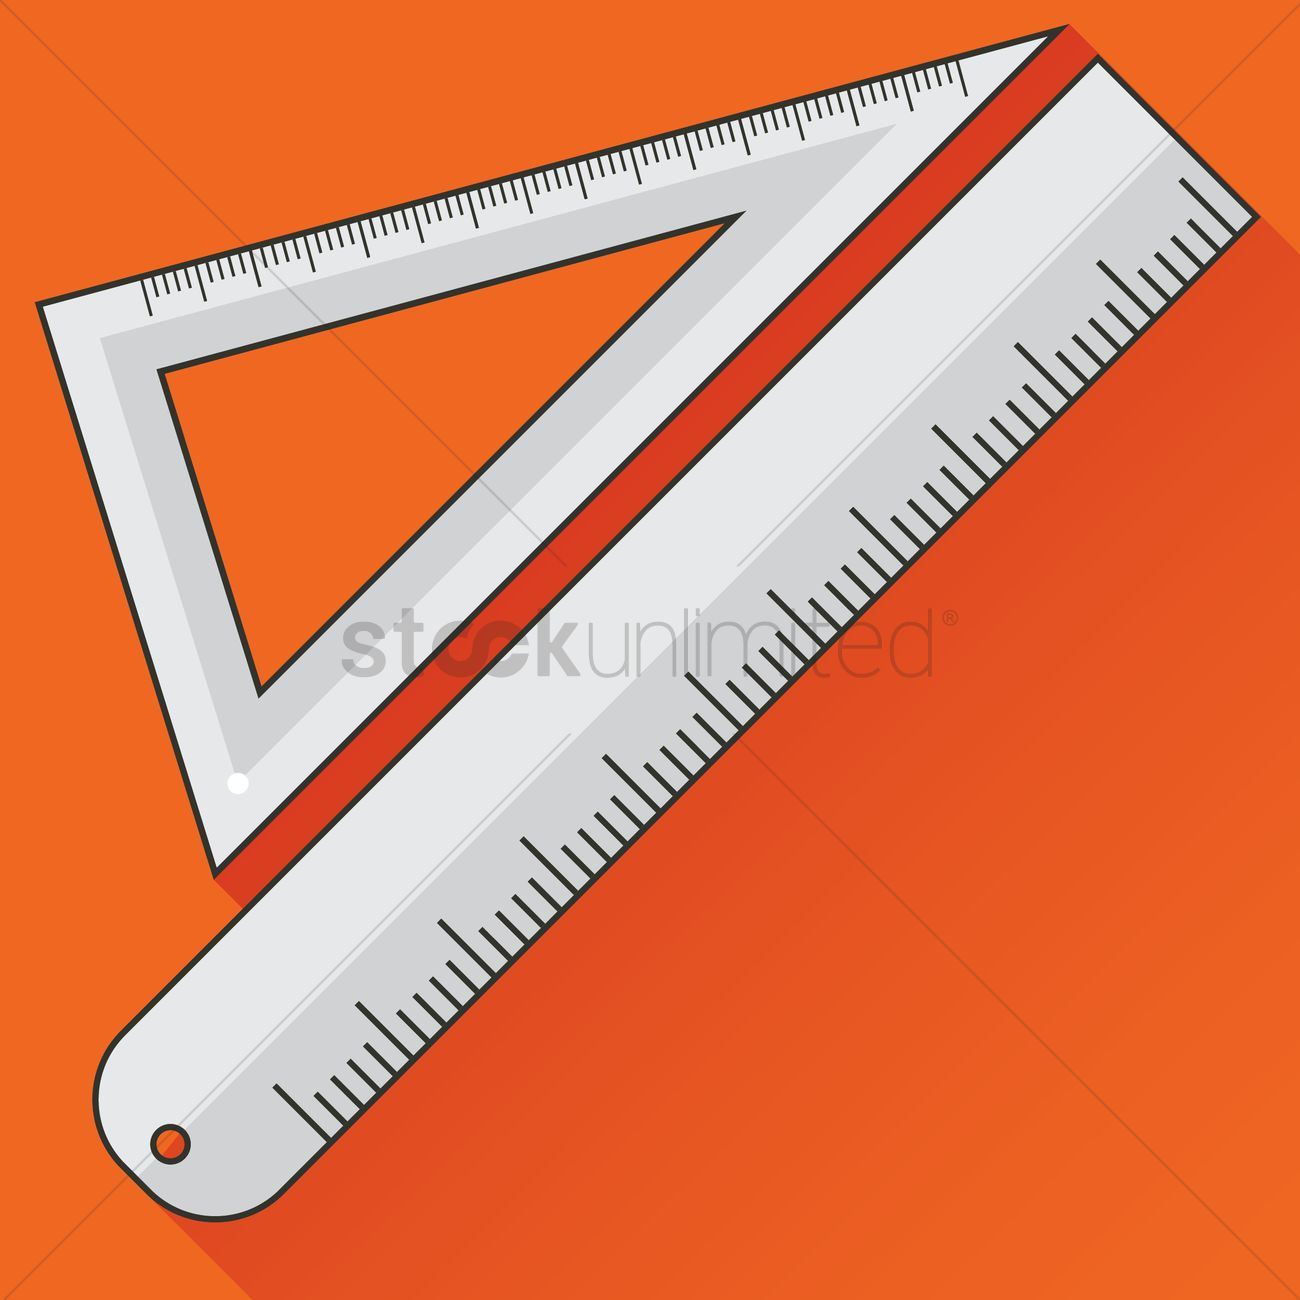 Types of rulers Vector Image - 1277273 | StockUnlimited